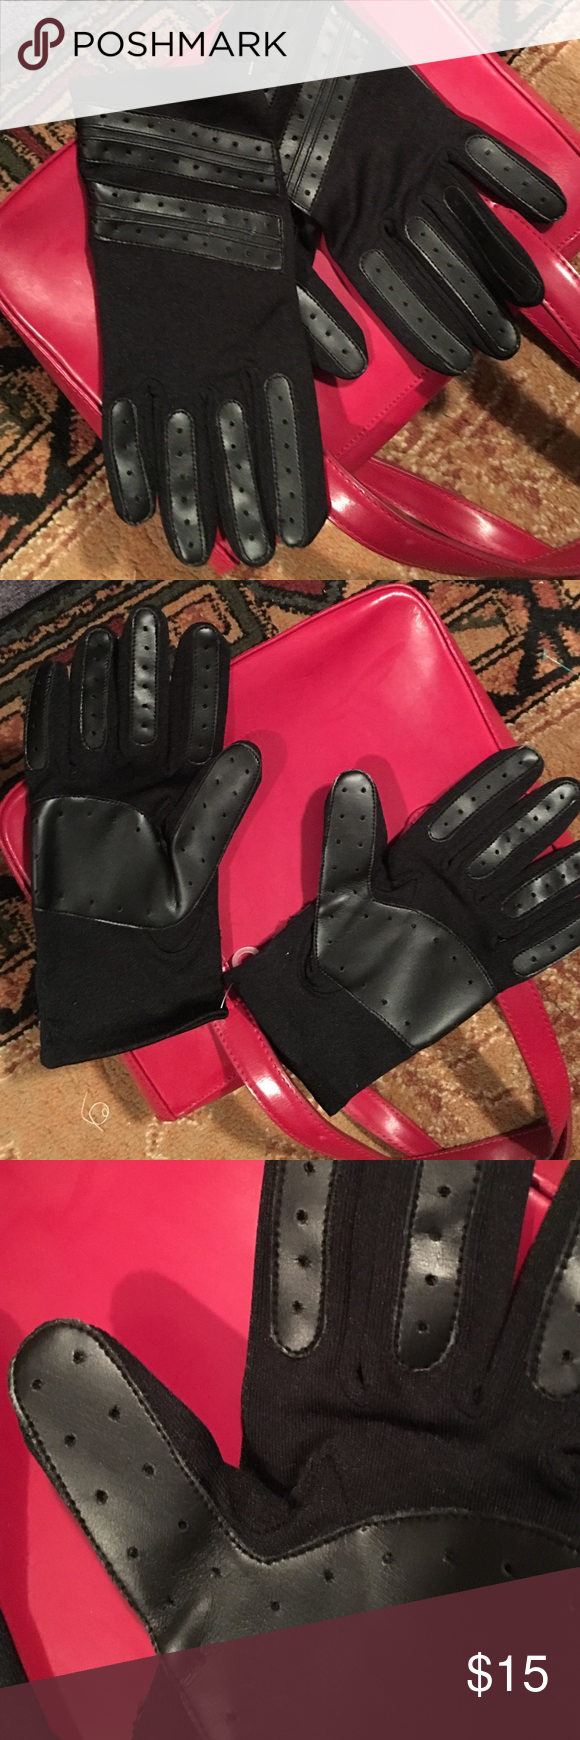 Fake leather driving gloves - Fabulous Faux Leather Gloves In Dynamite Black Beautiful Driving Gloves In Black With Faux